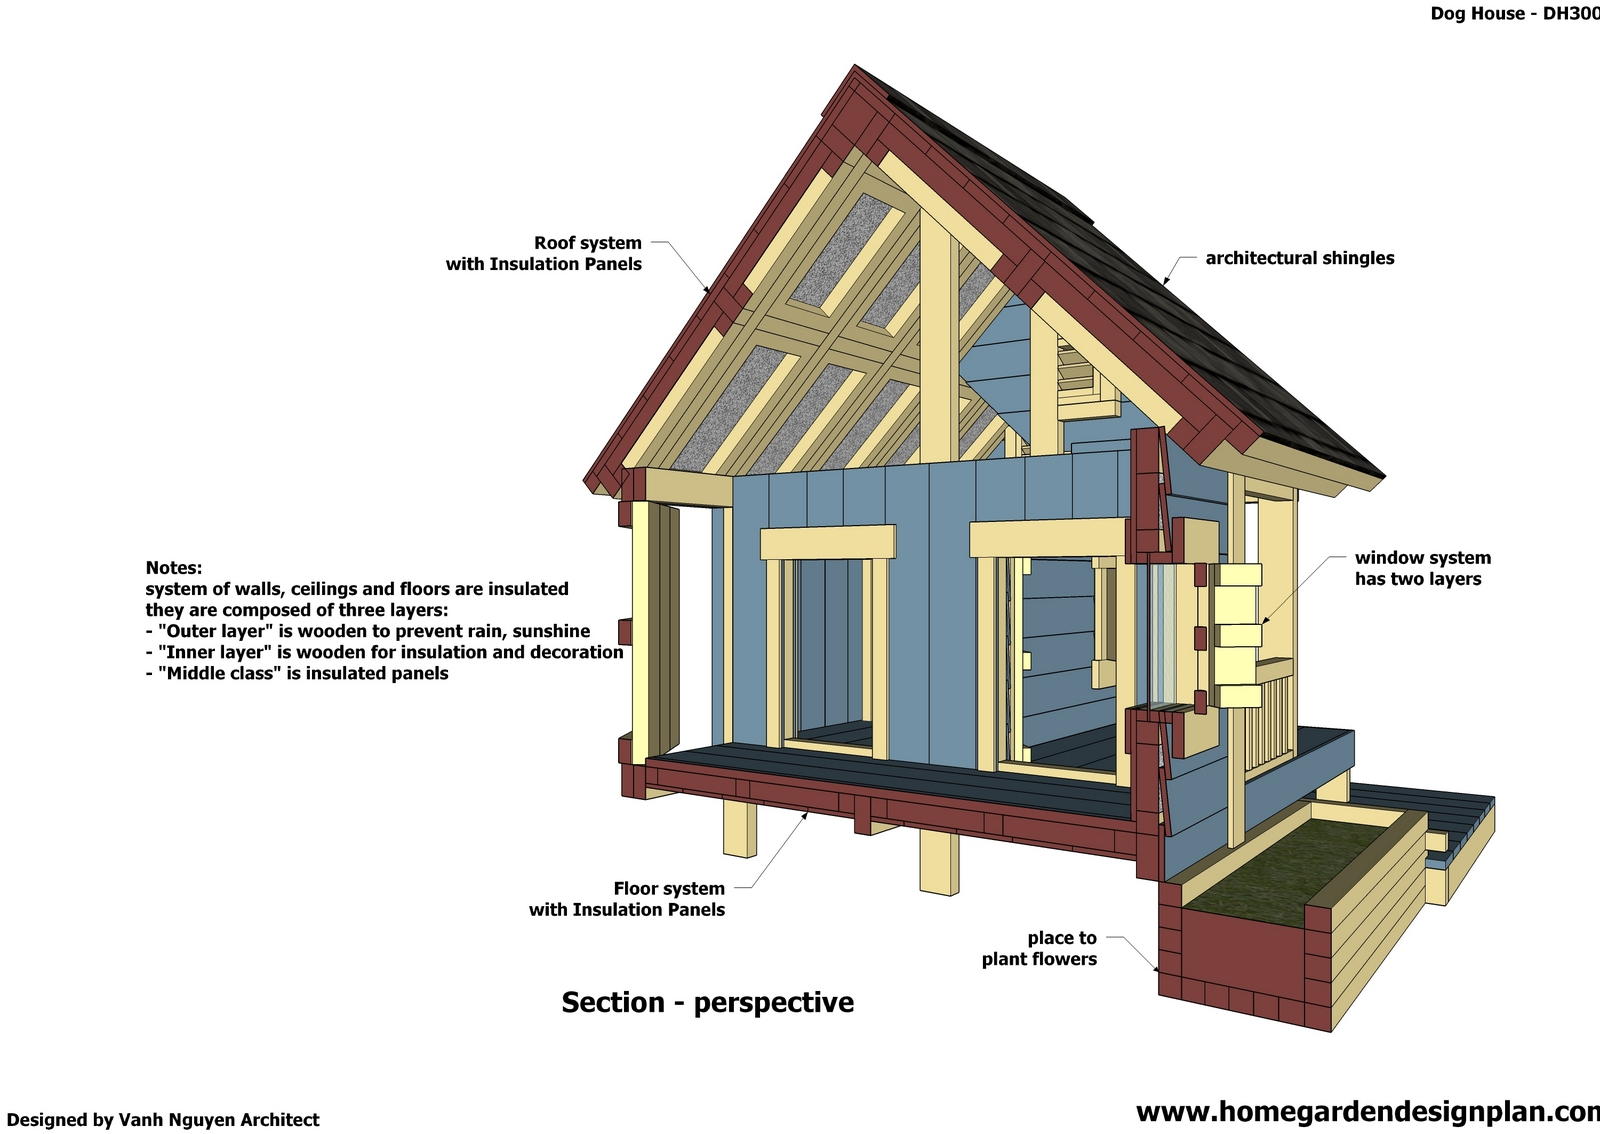 Shed plans free 12x16 2 dog house plans free wooden plans for Insulated dog house plans pdf